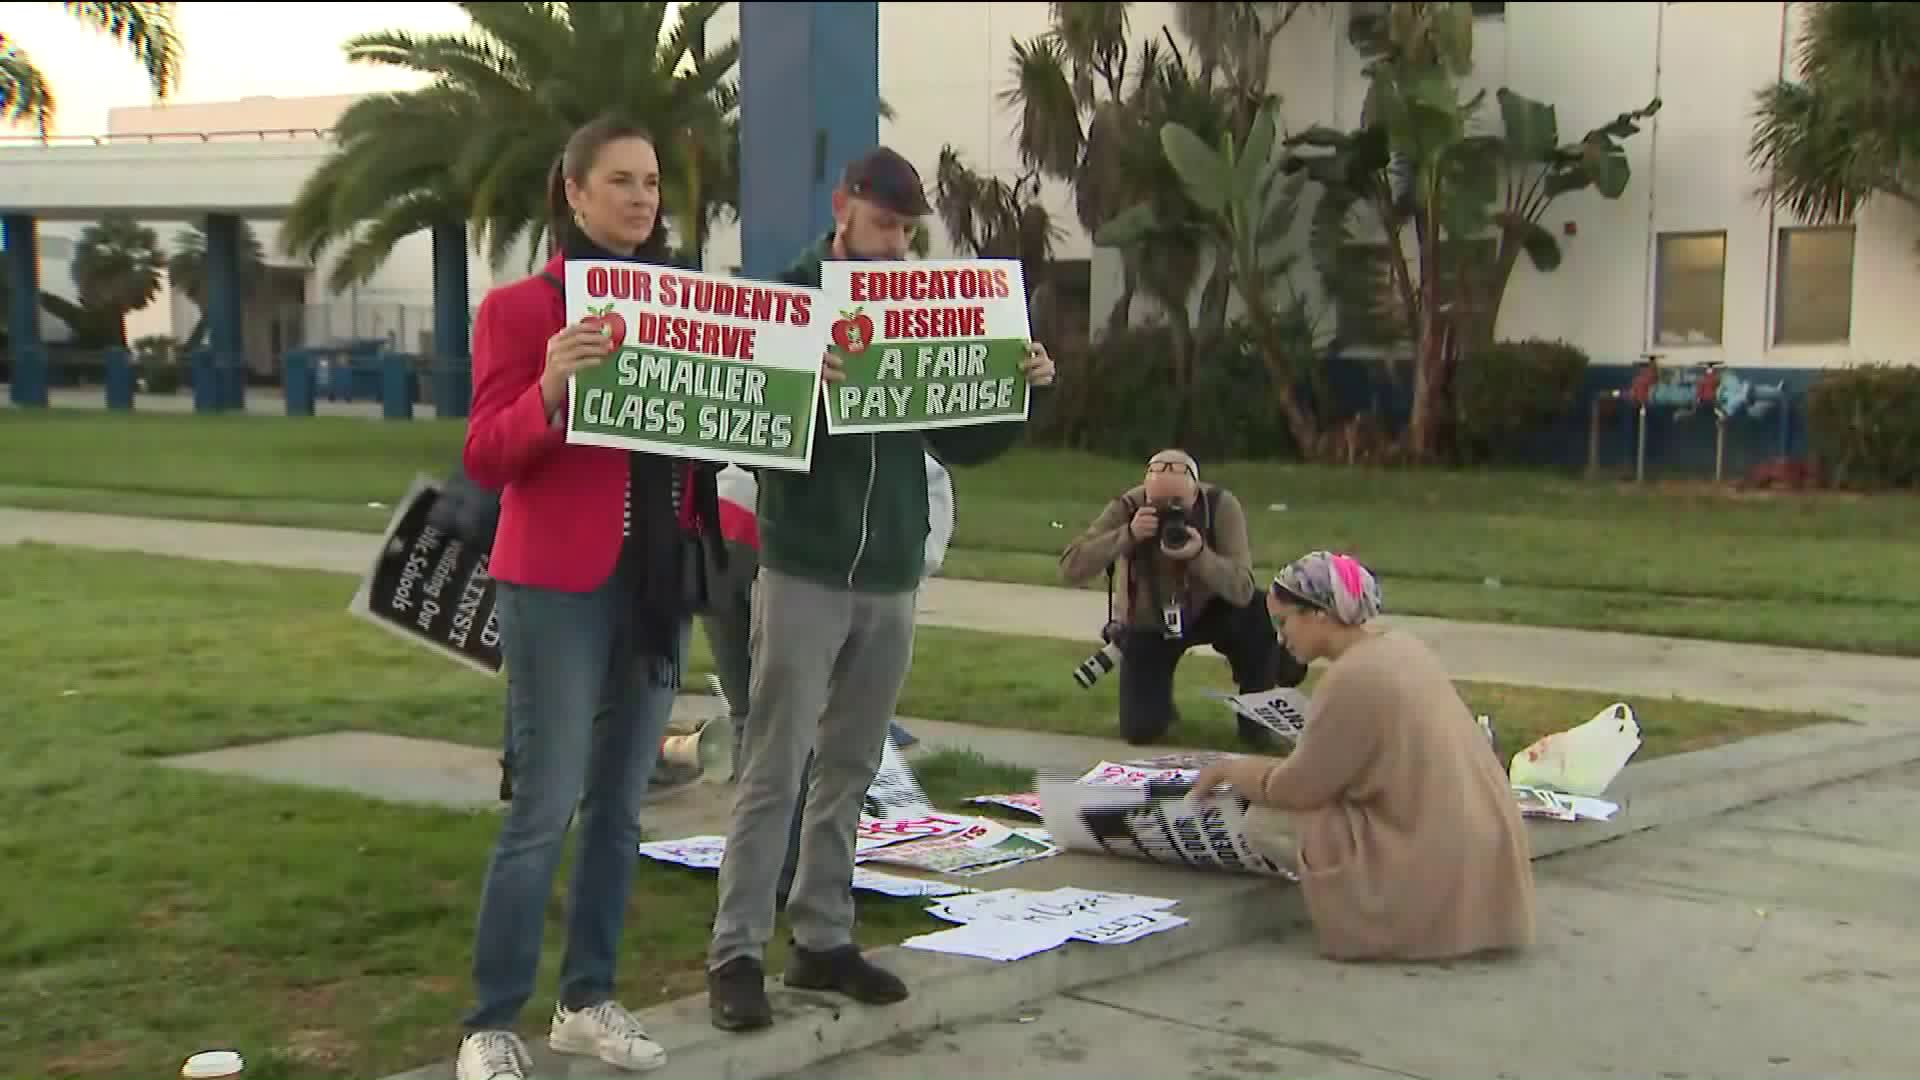 A rally in support of LAUSD teachers was held in front of Venice High School on Jan. 10, 2019. (Credit: KTLA)